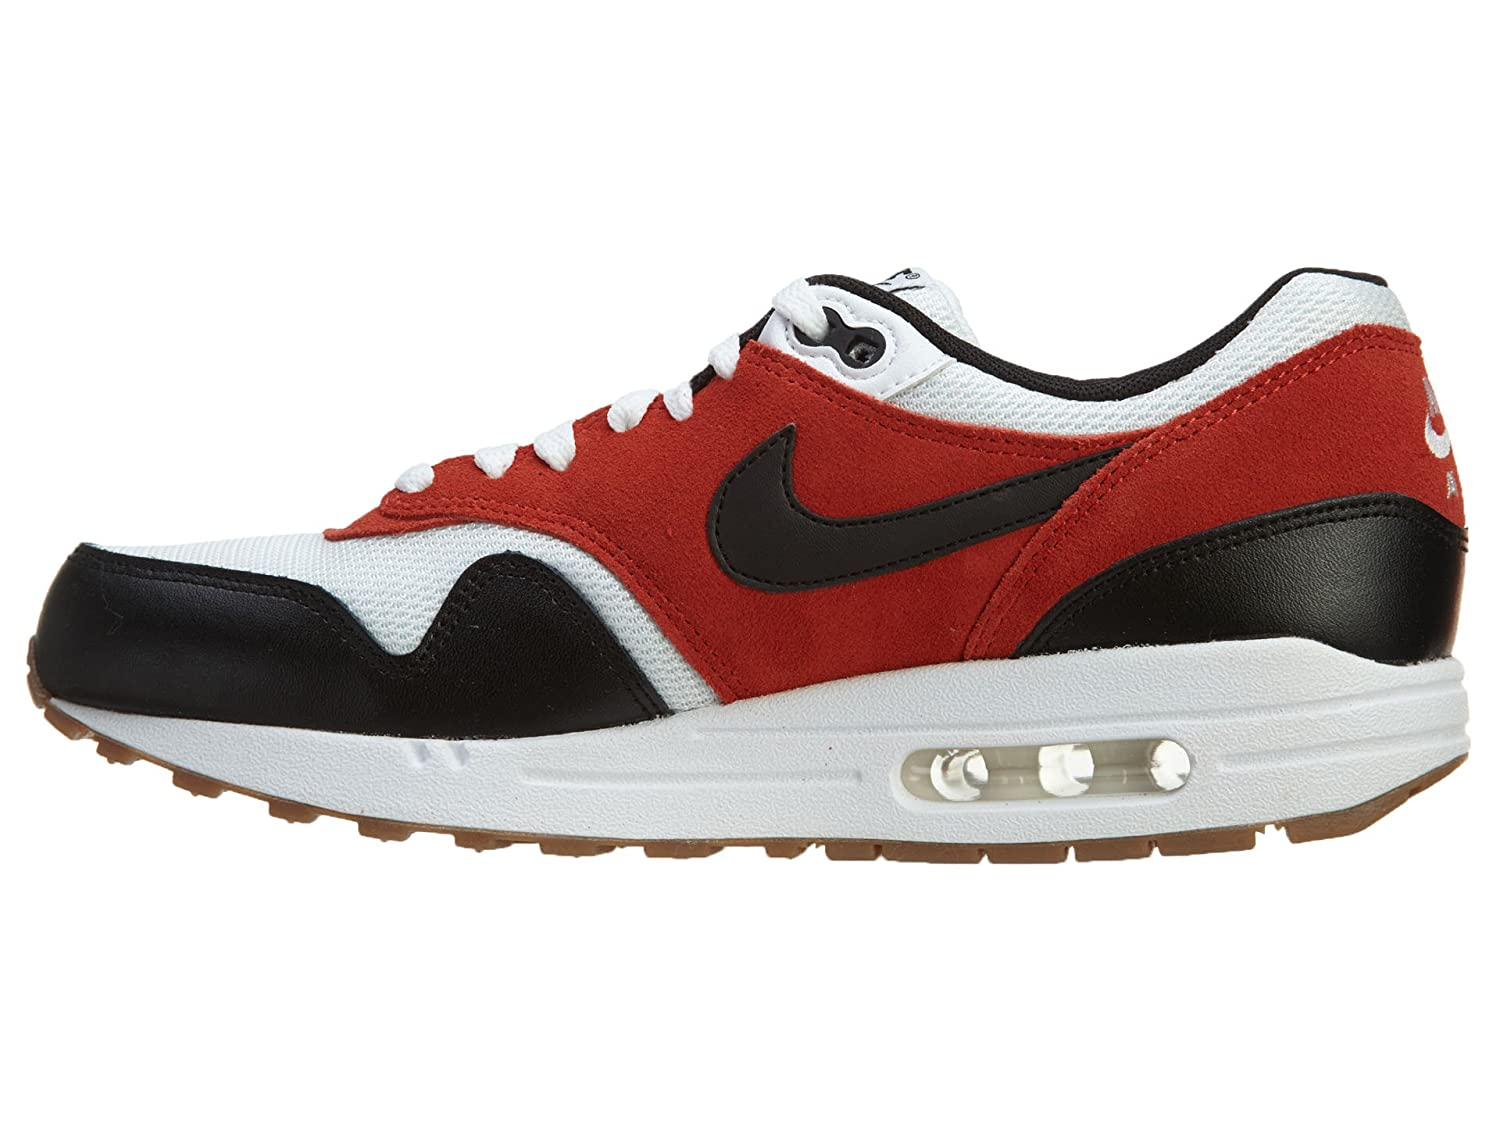 uk availability 4cc12 380cc official store nike air max 1 essential hombres naranja fccbb 3988d